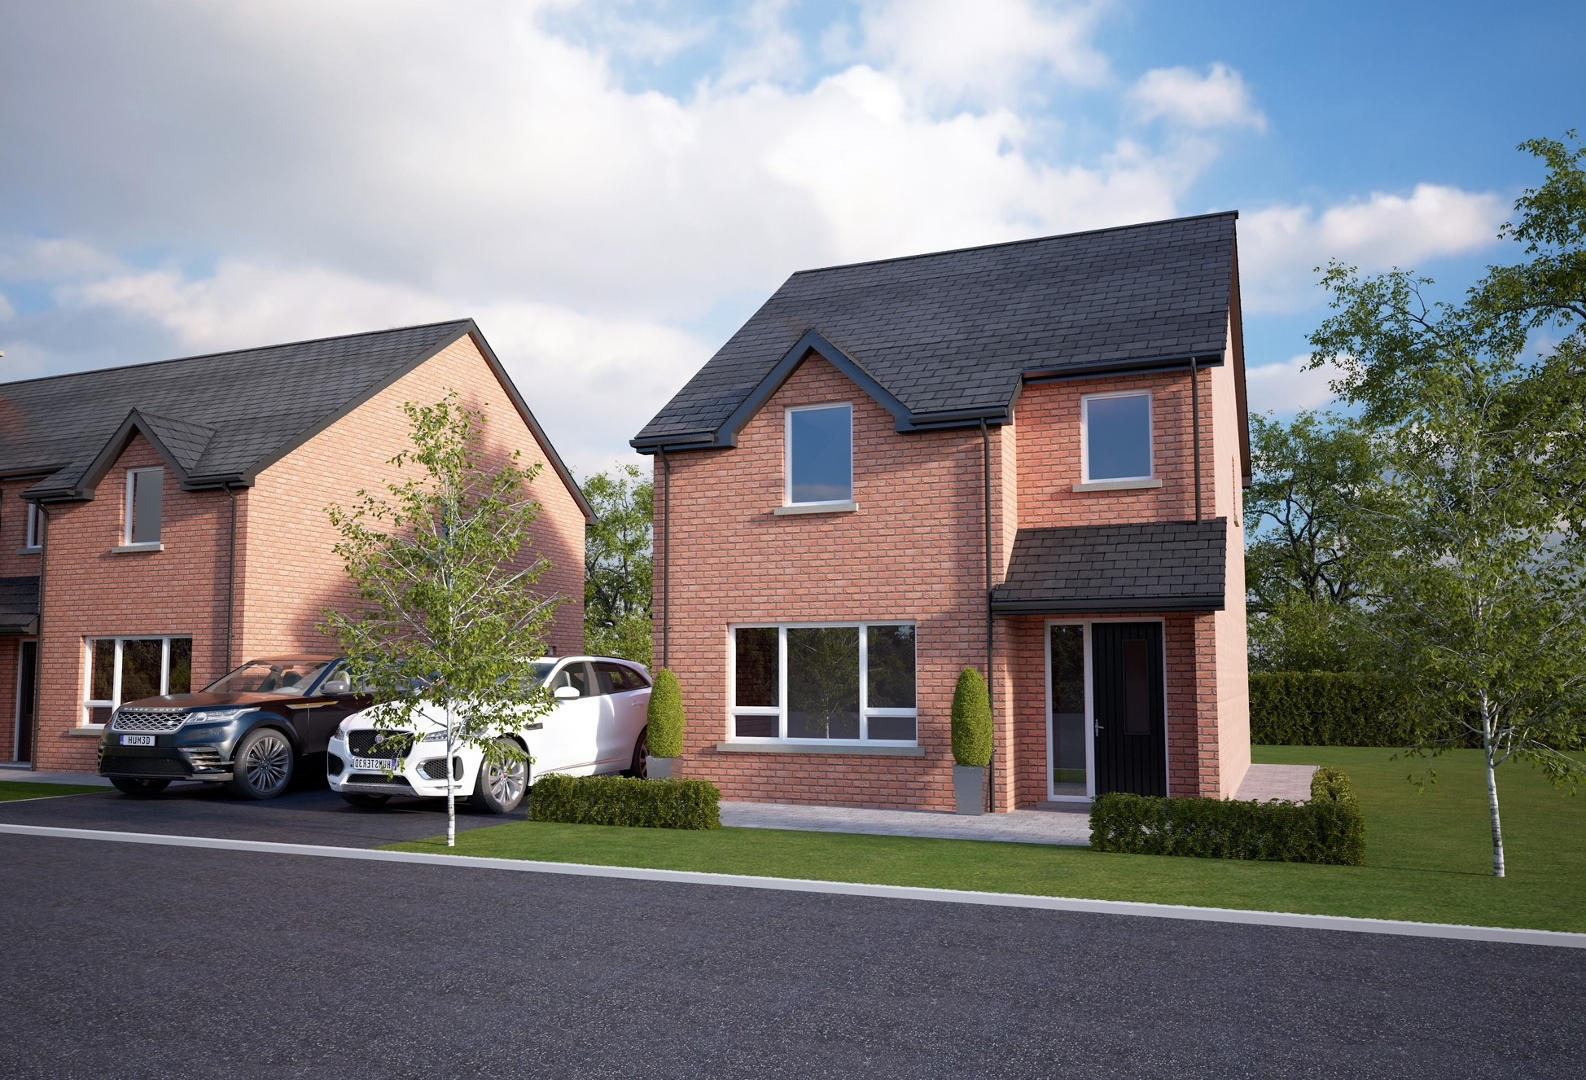 Photo 1 of Detached, Ballybay Meadows, Loughgall Road, Portadown